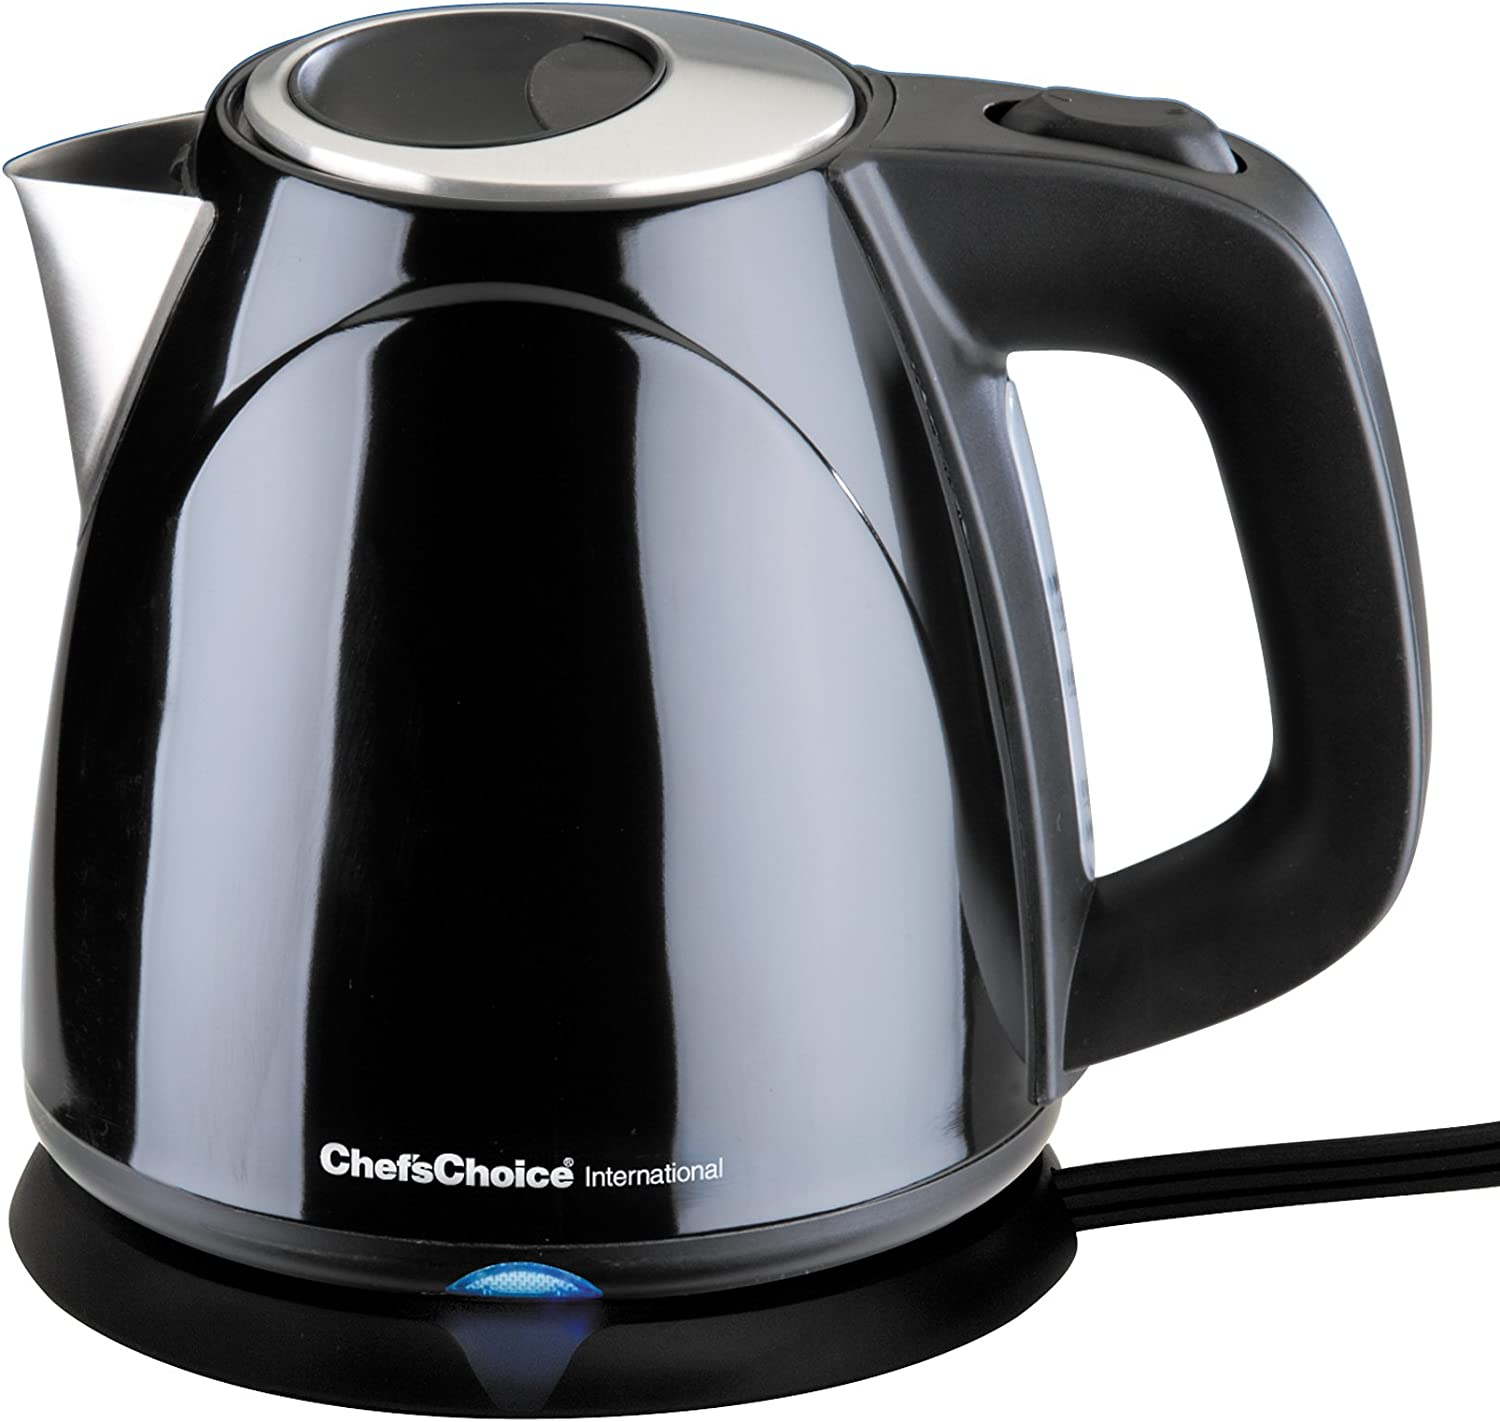 Chef sChoice 673 Cordless Compact Electric Kettle Features Boil Dry Protection Auto Shut Off Easy Pour, 1-Liter, Black